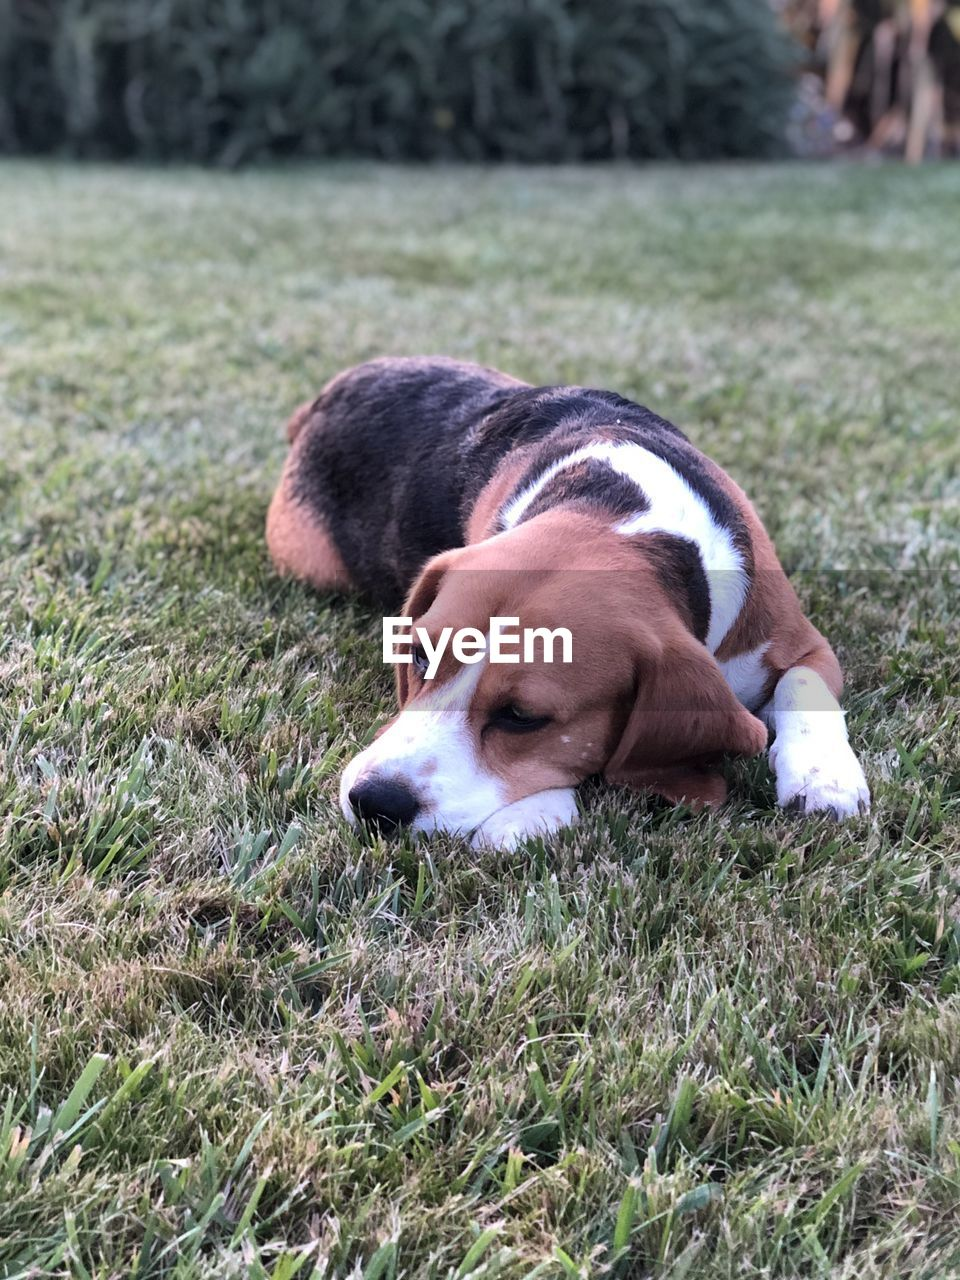 pets, domestic, mammal, domestic animals, dog, canine, animal themes, one animal, animal, grass, vertebrate, plant, relaxation, field, nature, no people, lying down, day, land, resting, animal head